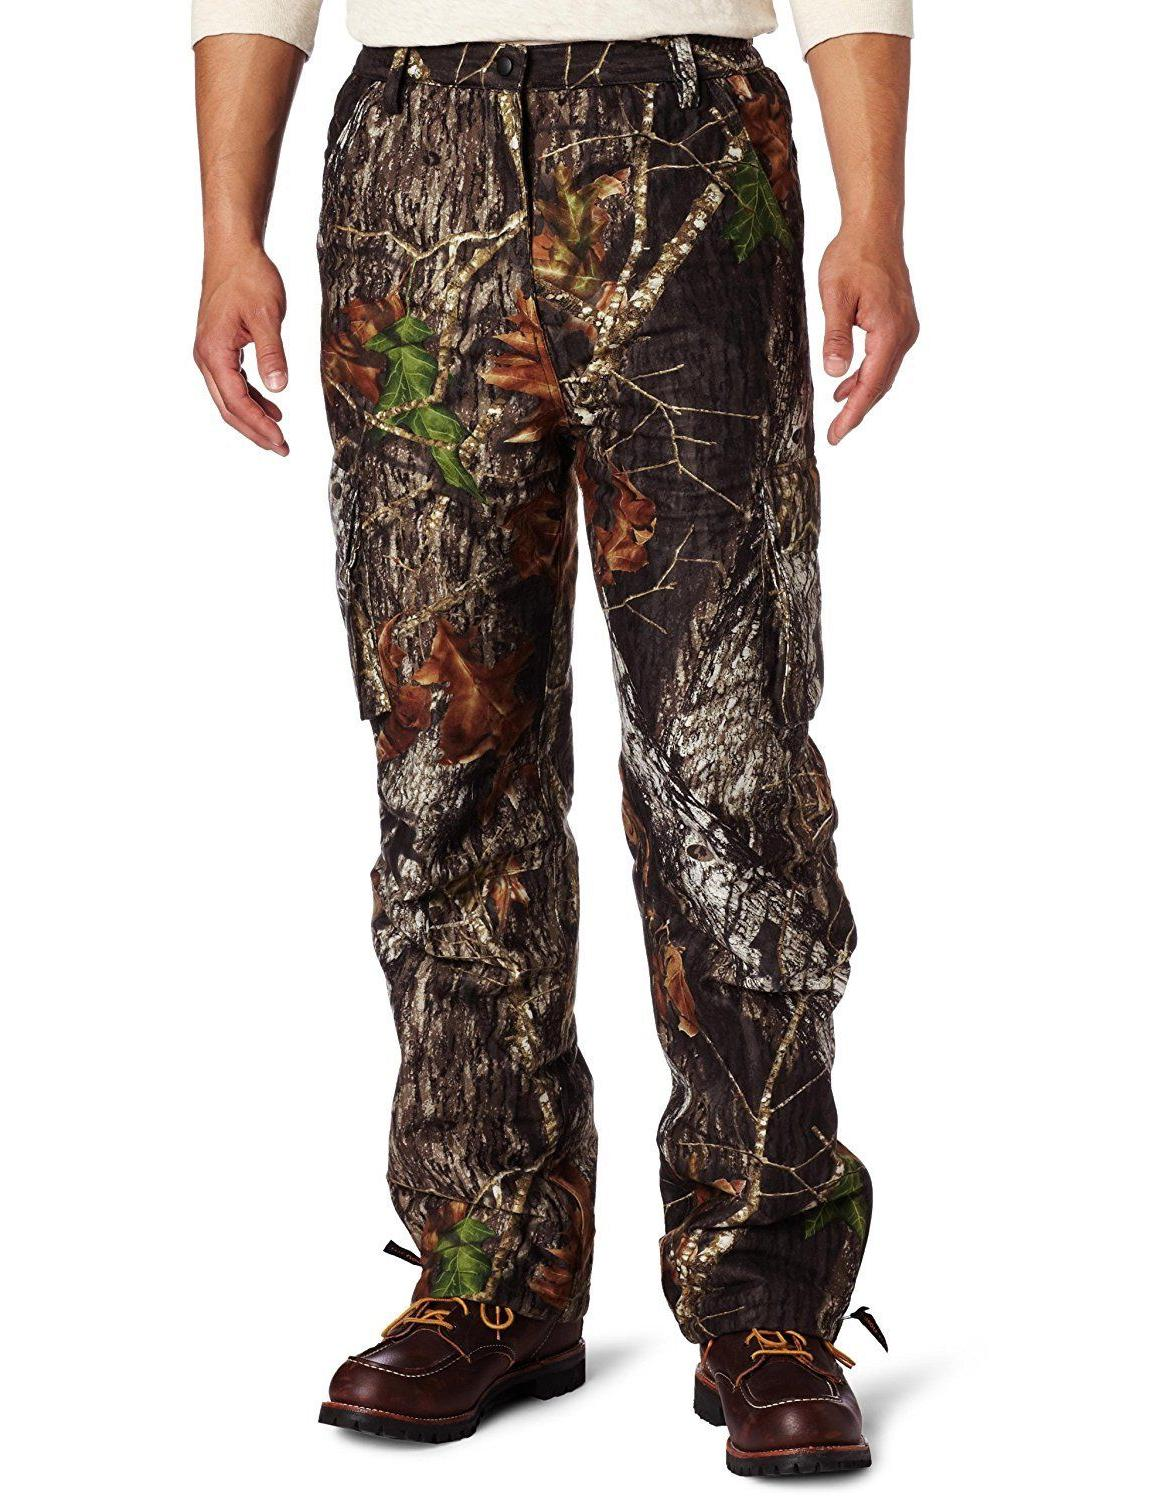 5589 men s hunting insulated pant mossy